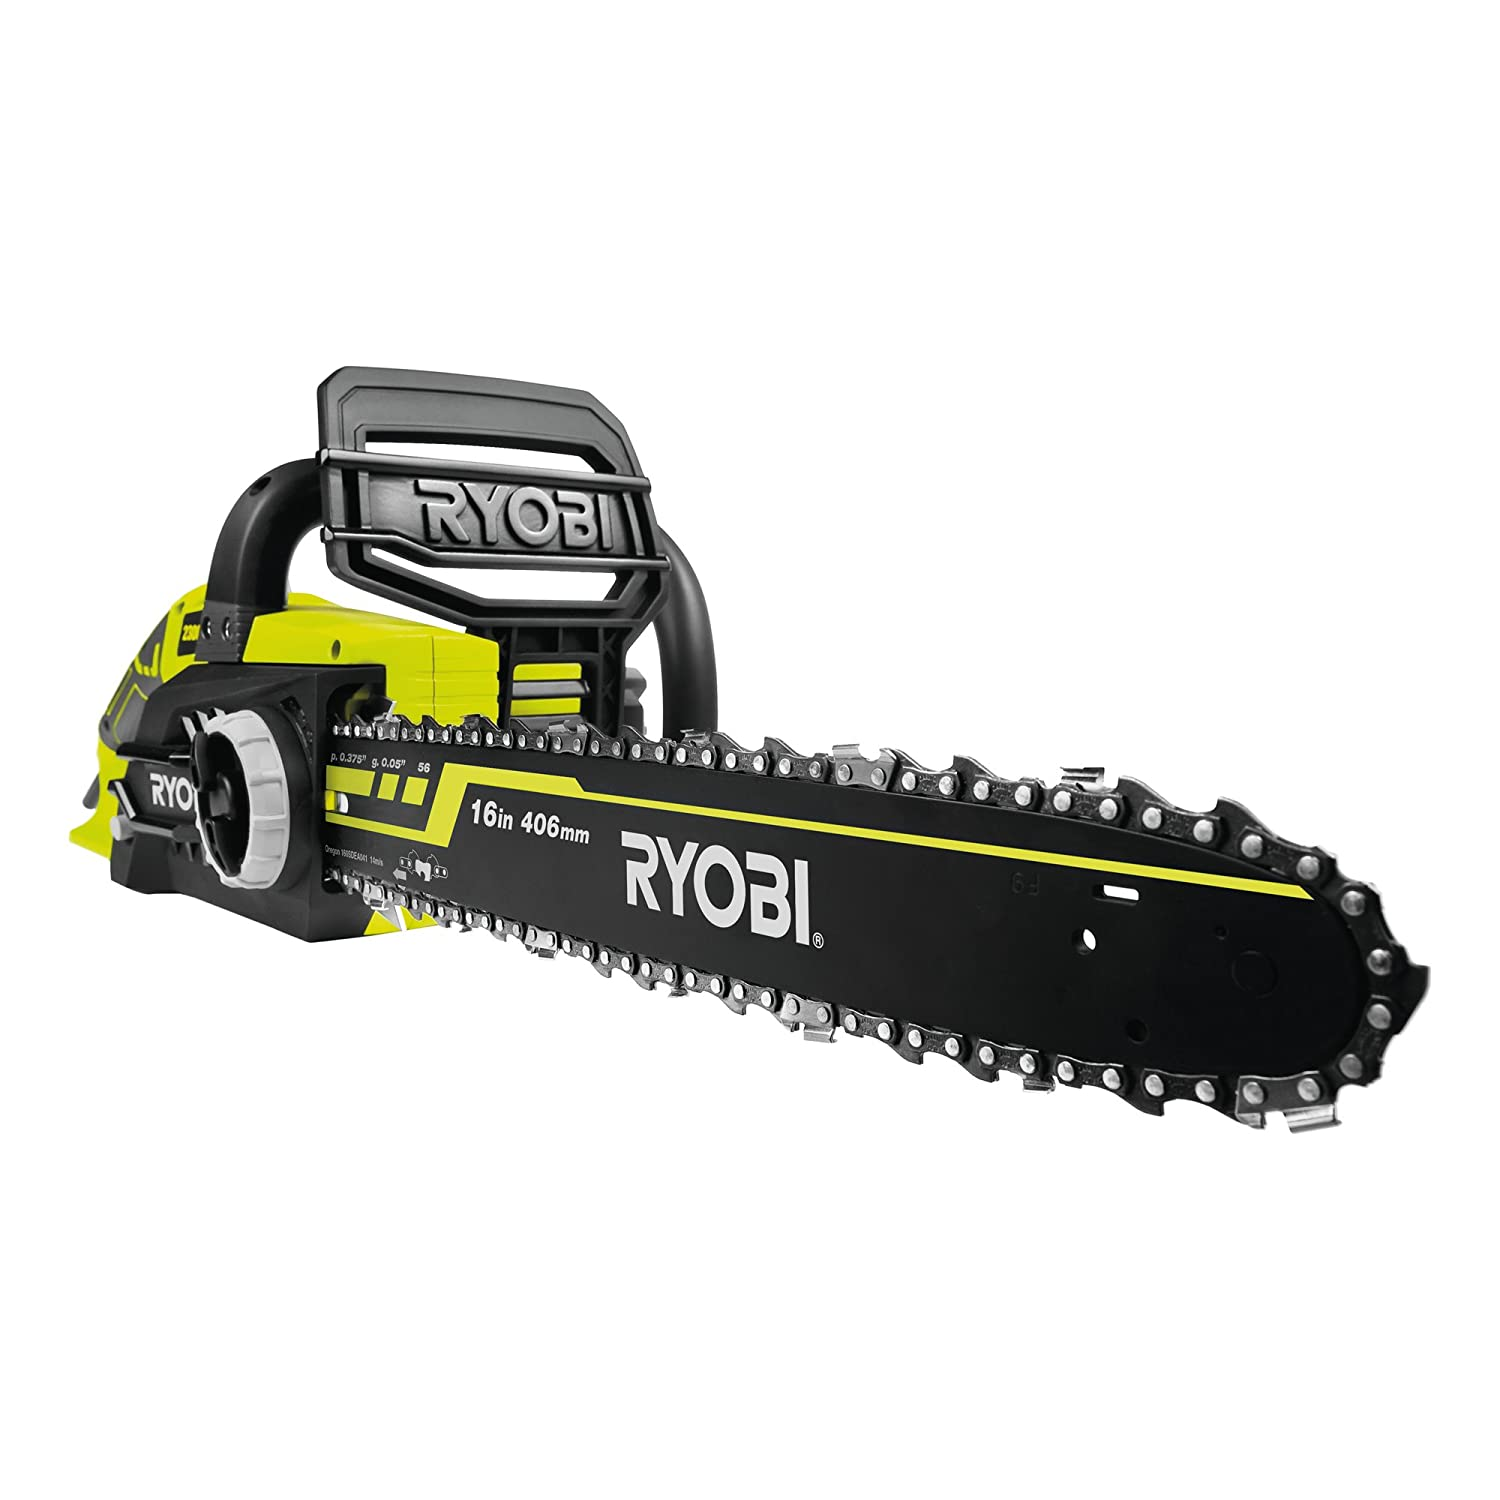 Ryobi rcs2340 chainsaw 2300 w greenblack amazon diy tools keyboard keysfo